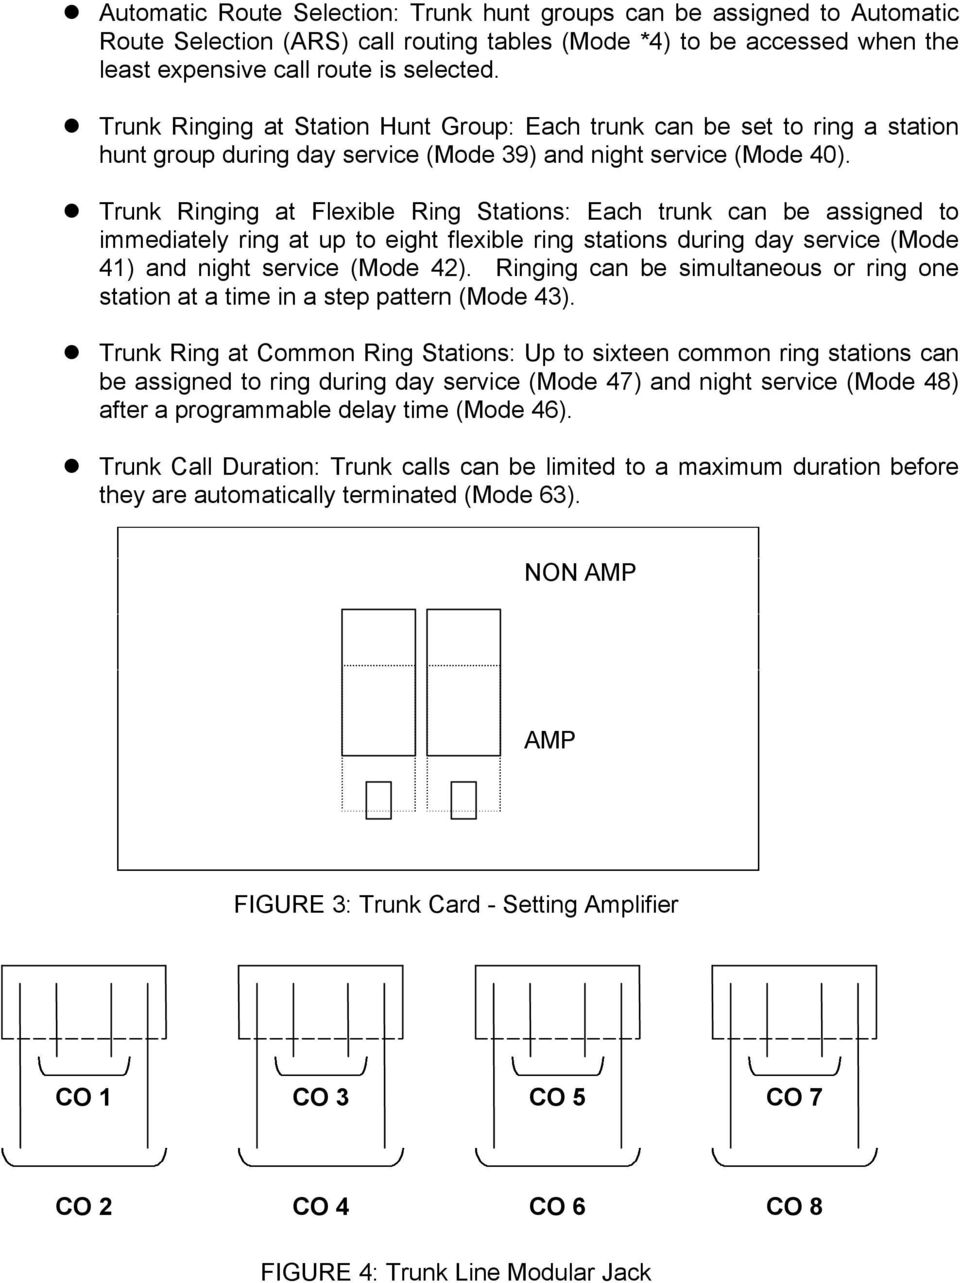 Trunk Ringing at Flexible Ring Stations: Each trunk can be assigned to immediately ring at up to eight flexible ring stations during day service (Mode 41) and night service (Mode 42).